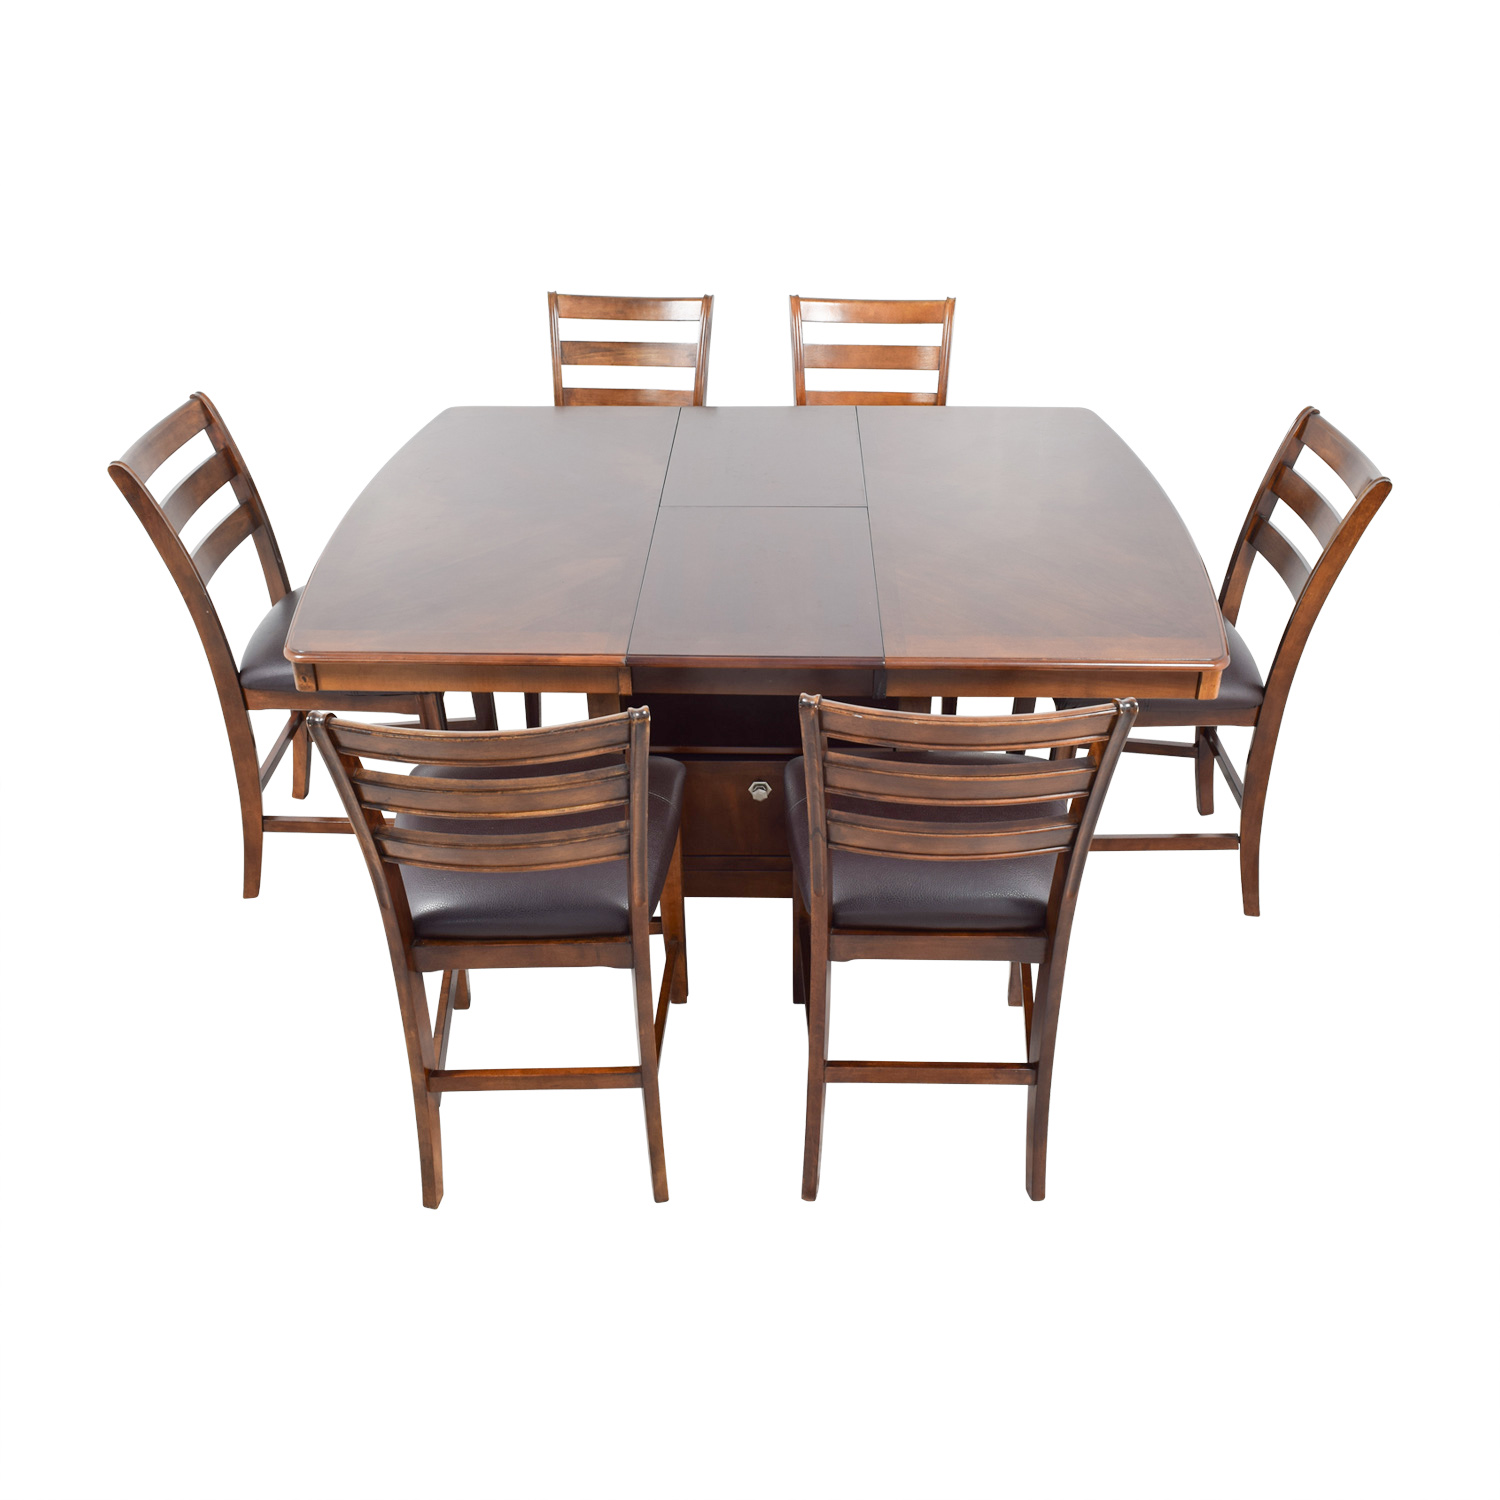 Bobs Dining Room Sets: Bob's Furniture Bob's Furniture Counter Height